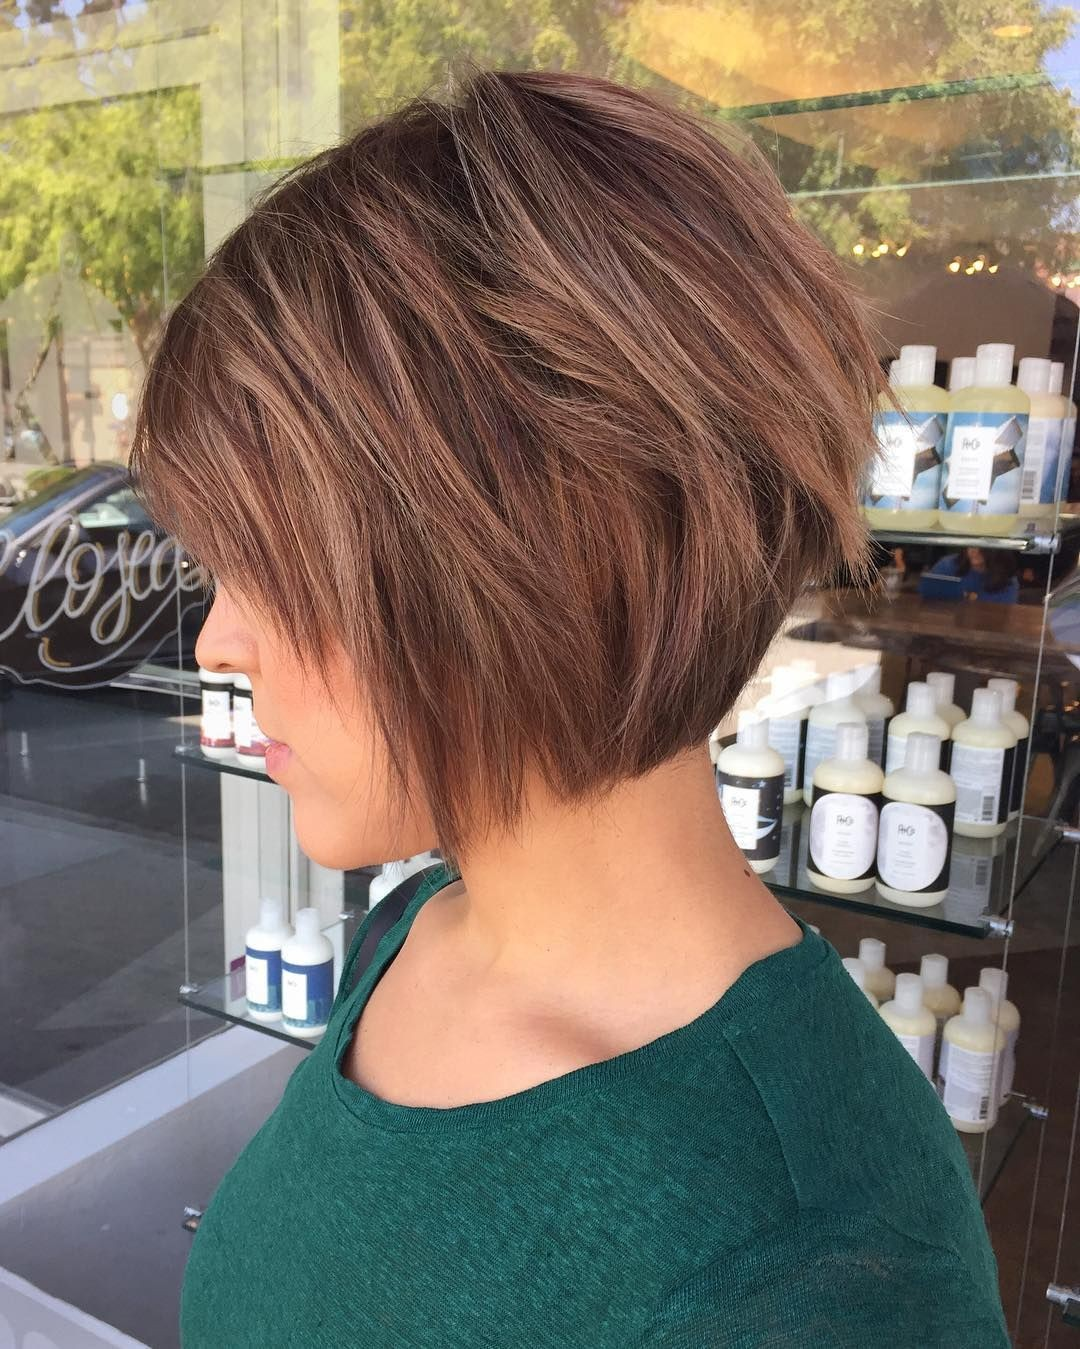 short layered bob hair styles стрижка градуированный боб 30 фото для роста волос 8513 | short layered bob style haircuts inspirational 50 chic long and short layered bob haircuts dazzle with layers of short layered bob style haircuts